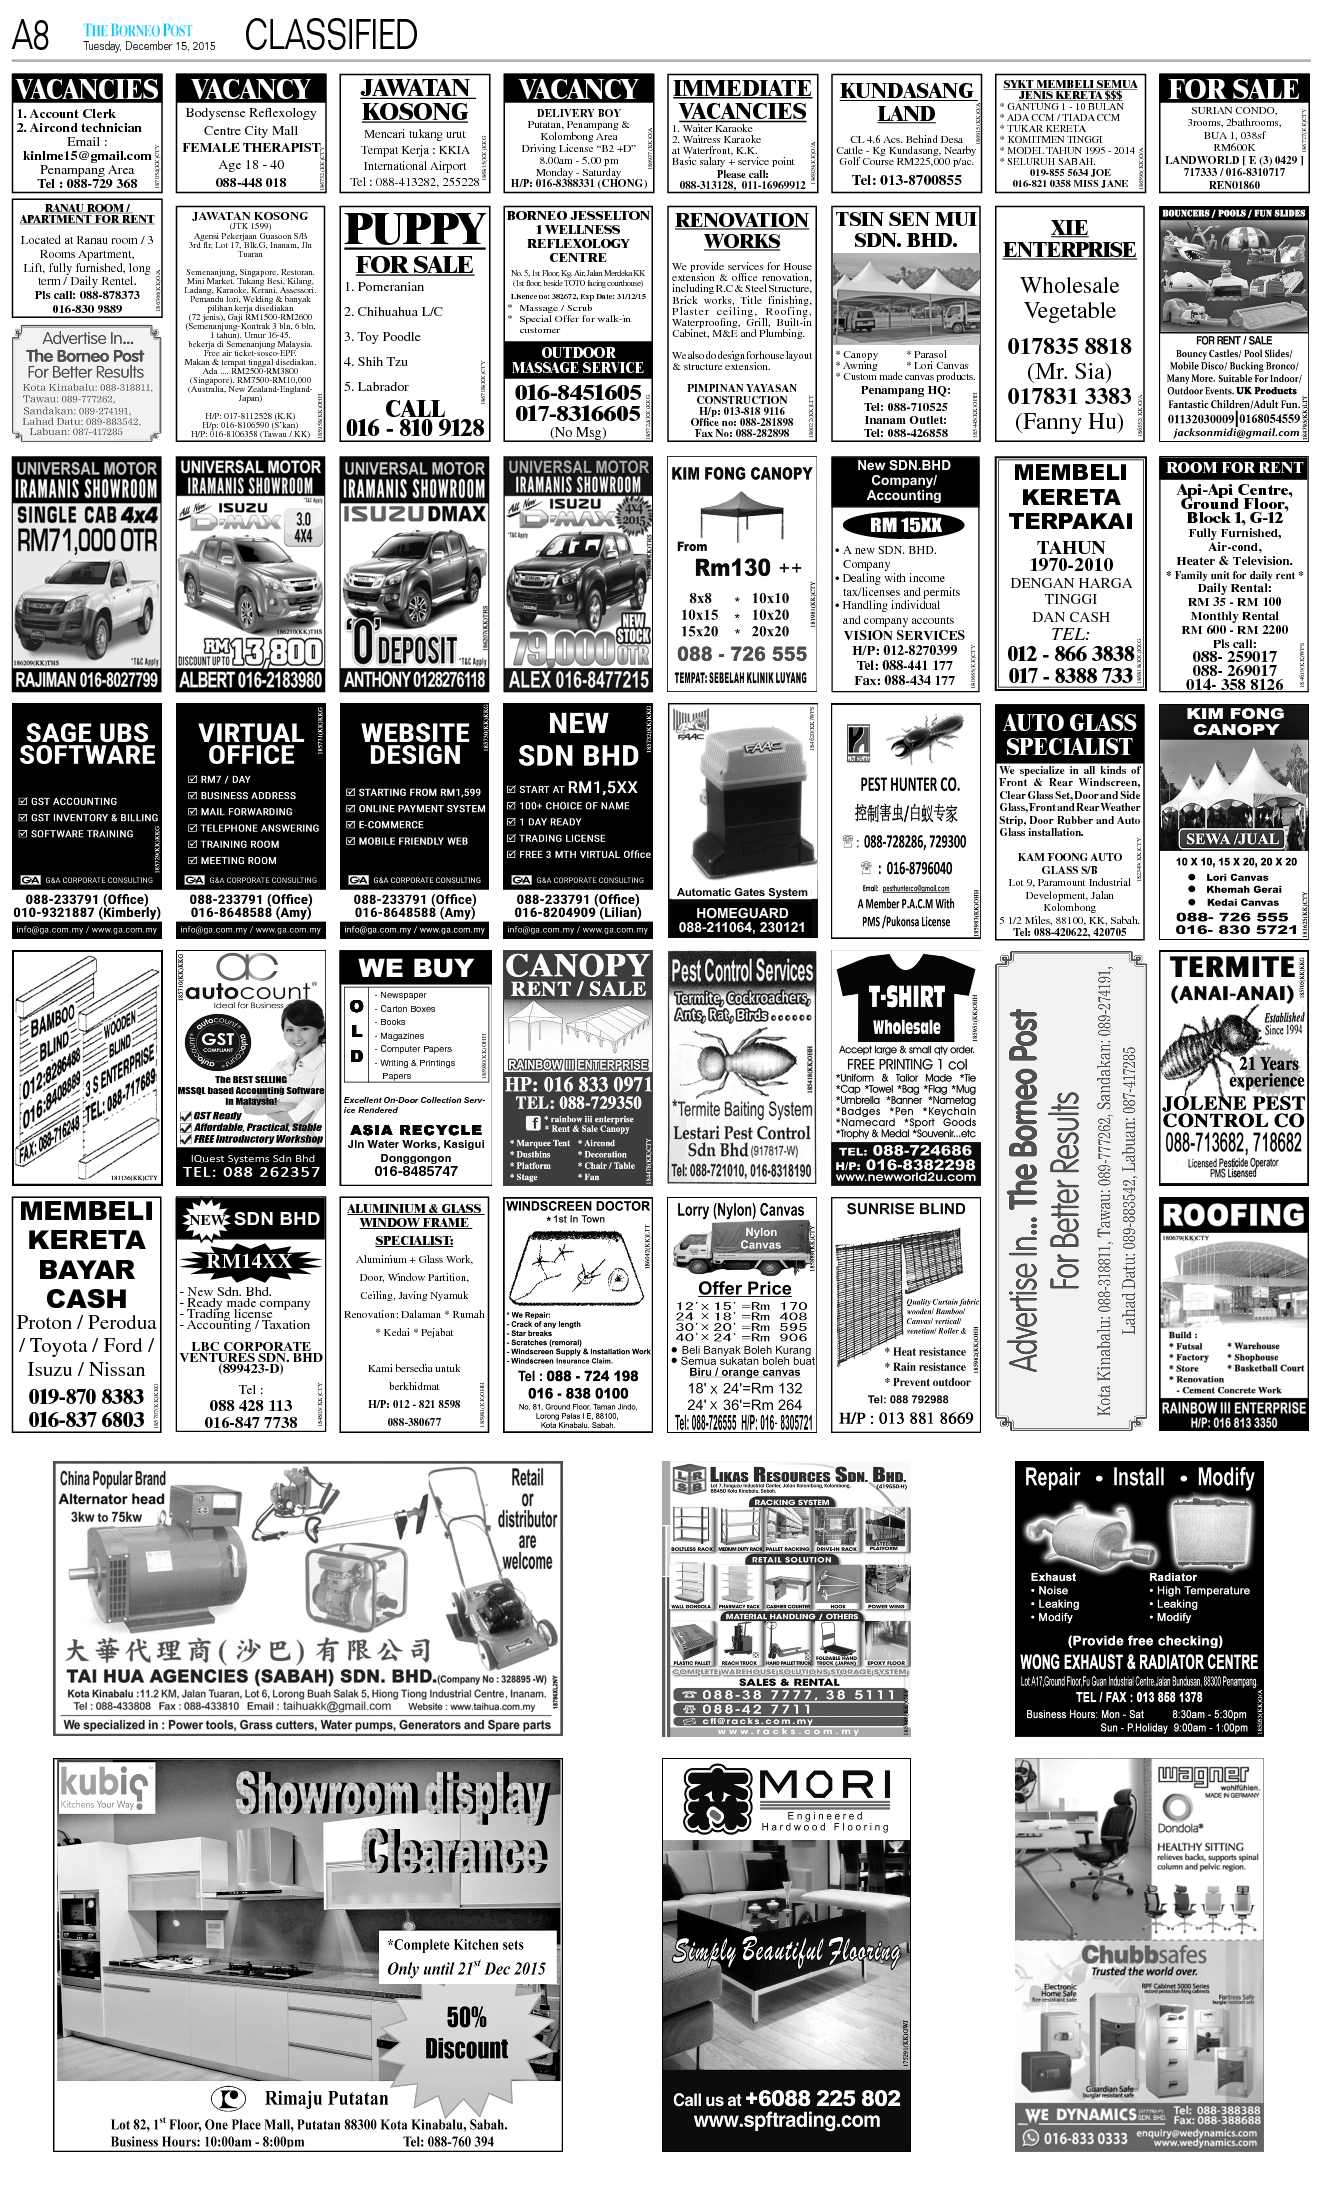 Tuesday - Dec 15 | The Borneo Post Classifieds